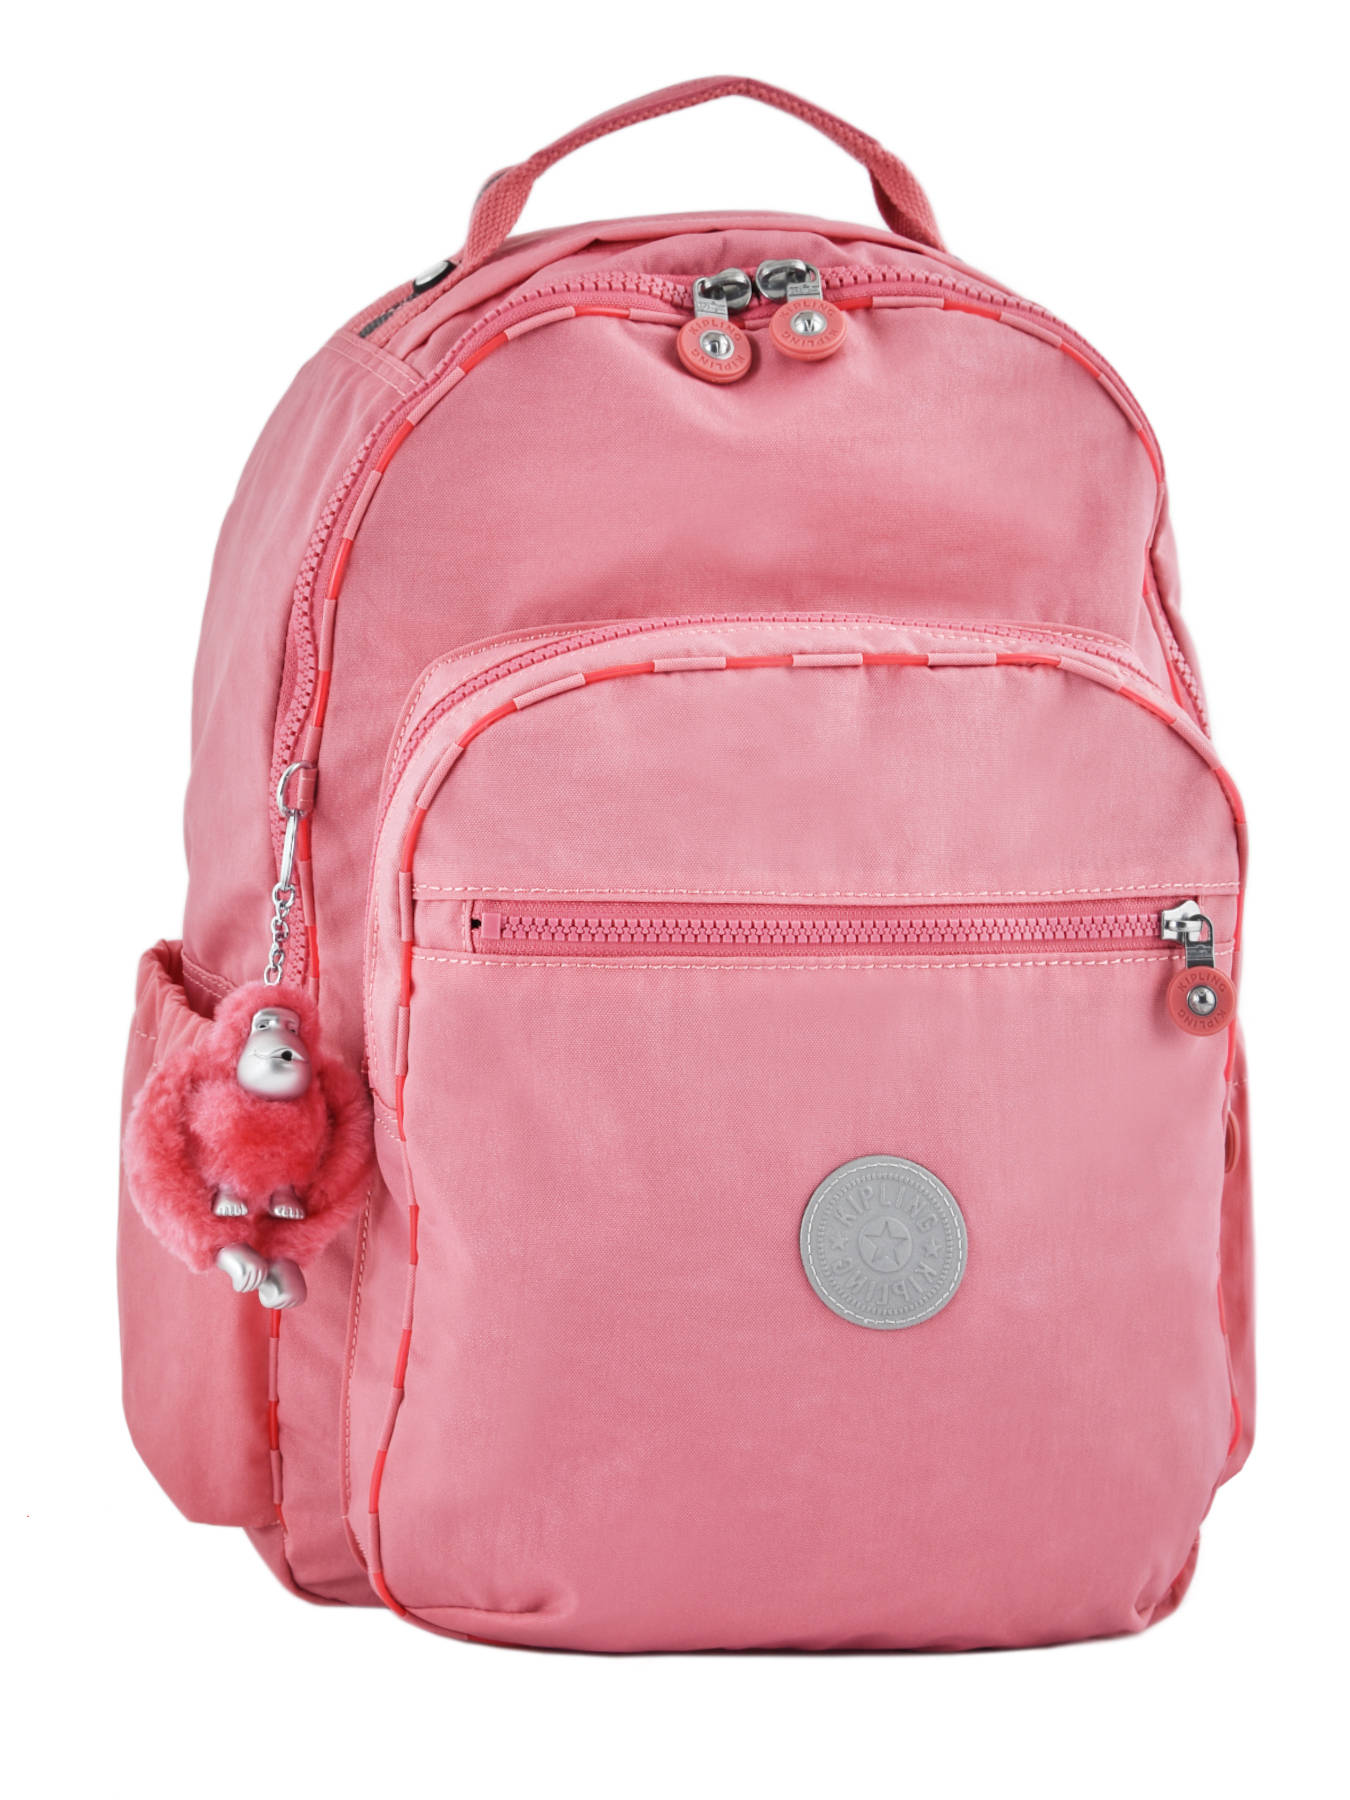 ce13e7347 Rugzak 1 Compartiment + Pc 15'' Kipling Roze go school 116 ...